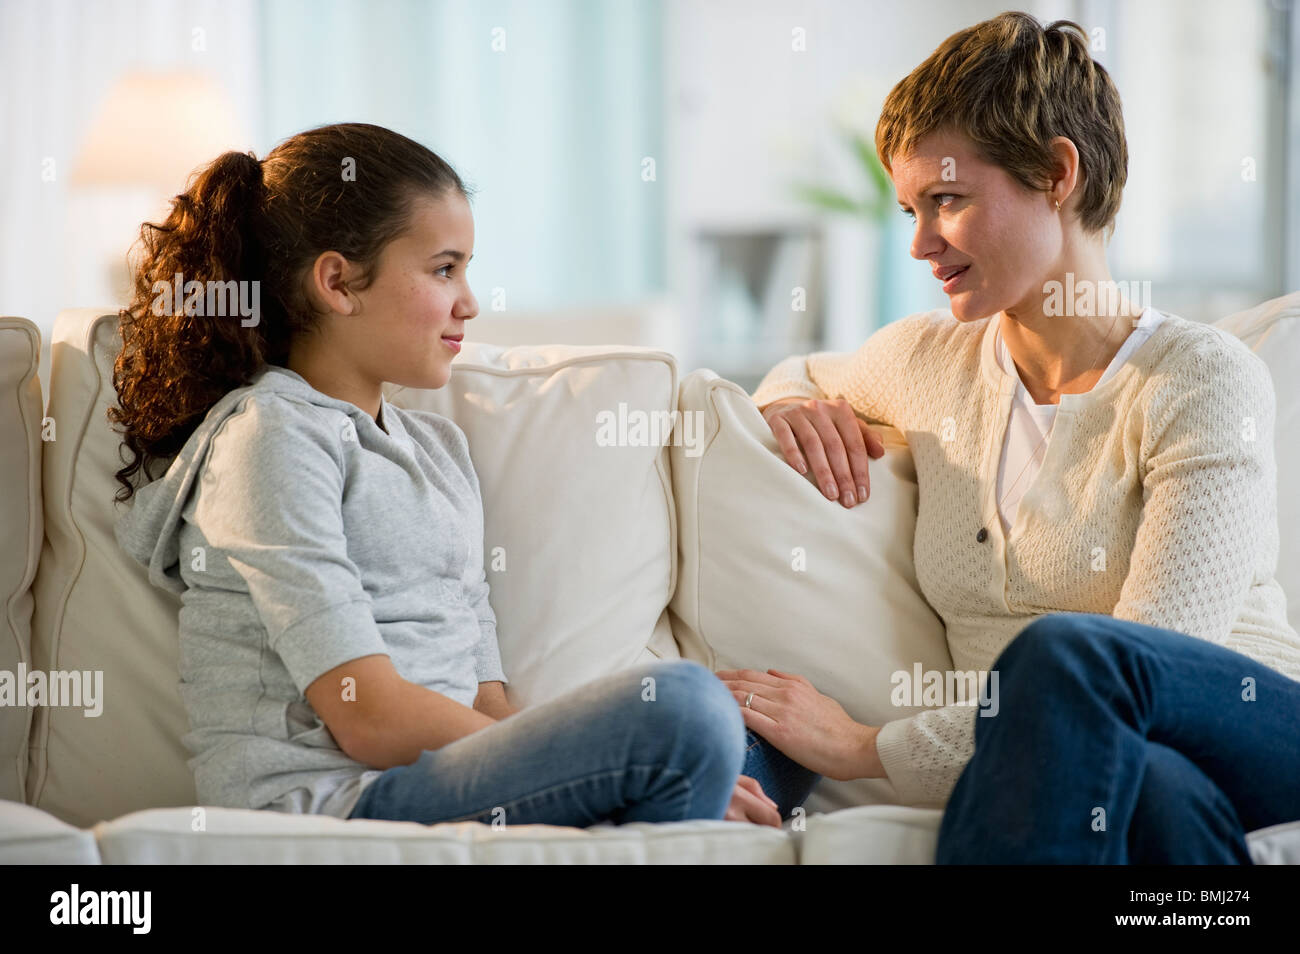 Mother and daughter having a serious talk - Stock Image